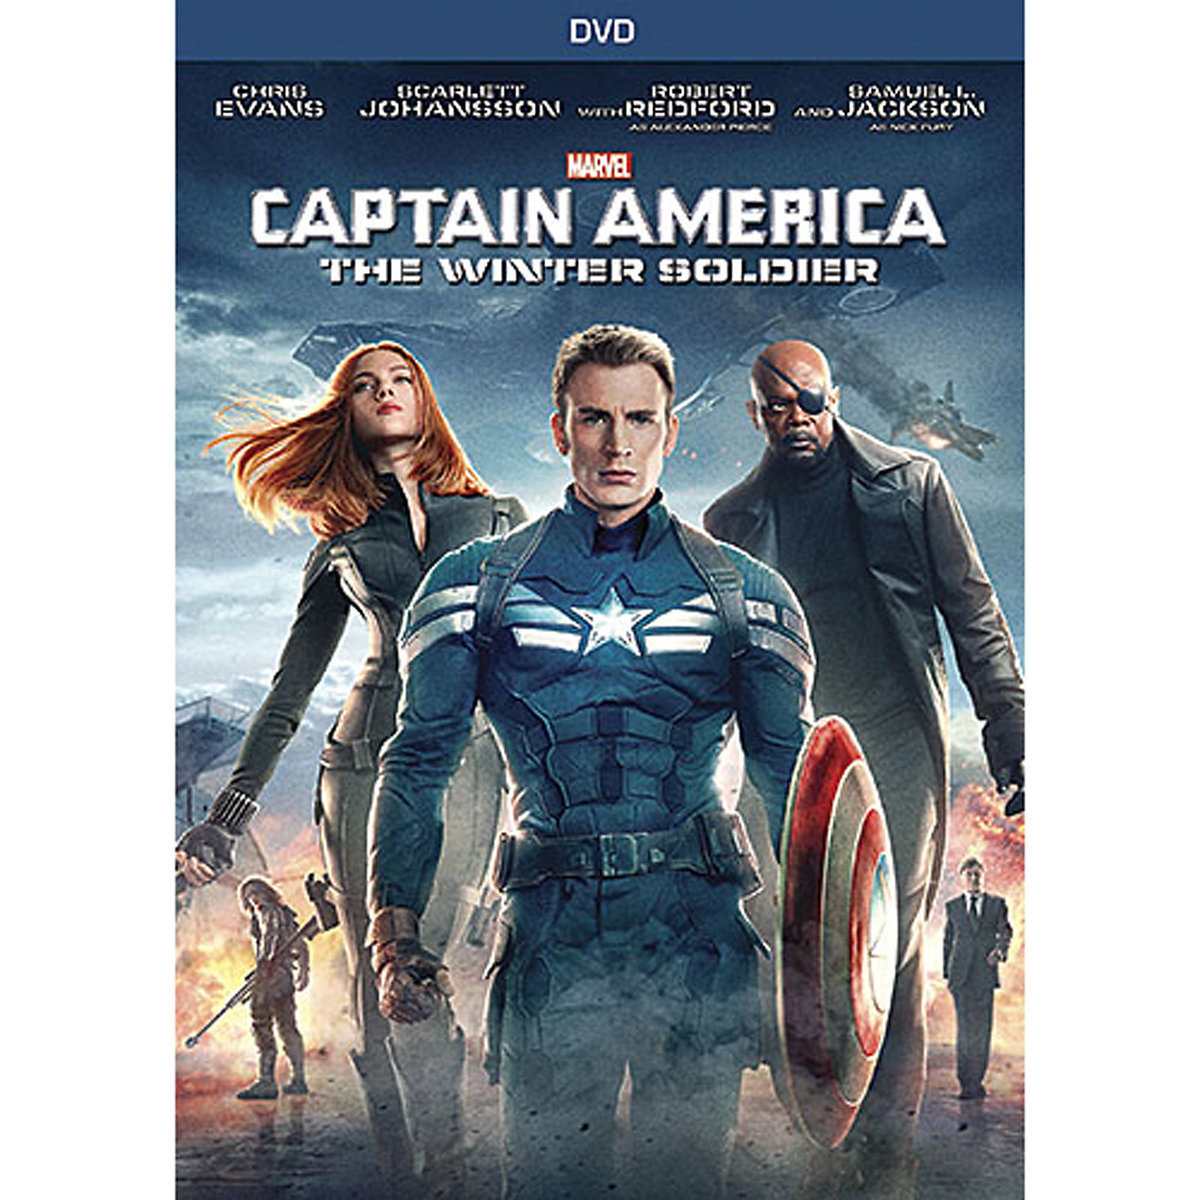 Captain America: The Winter Soldier (DVD) by BUENA VISTA HOME ENTERTAIMENT